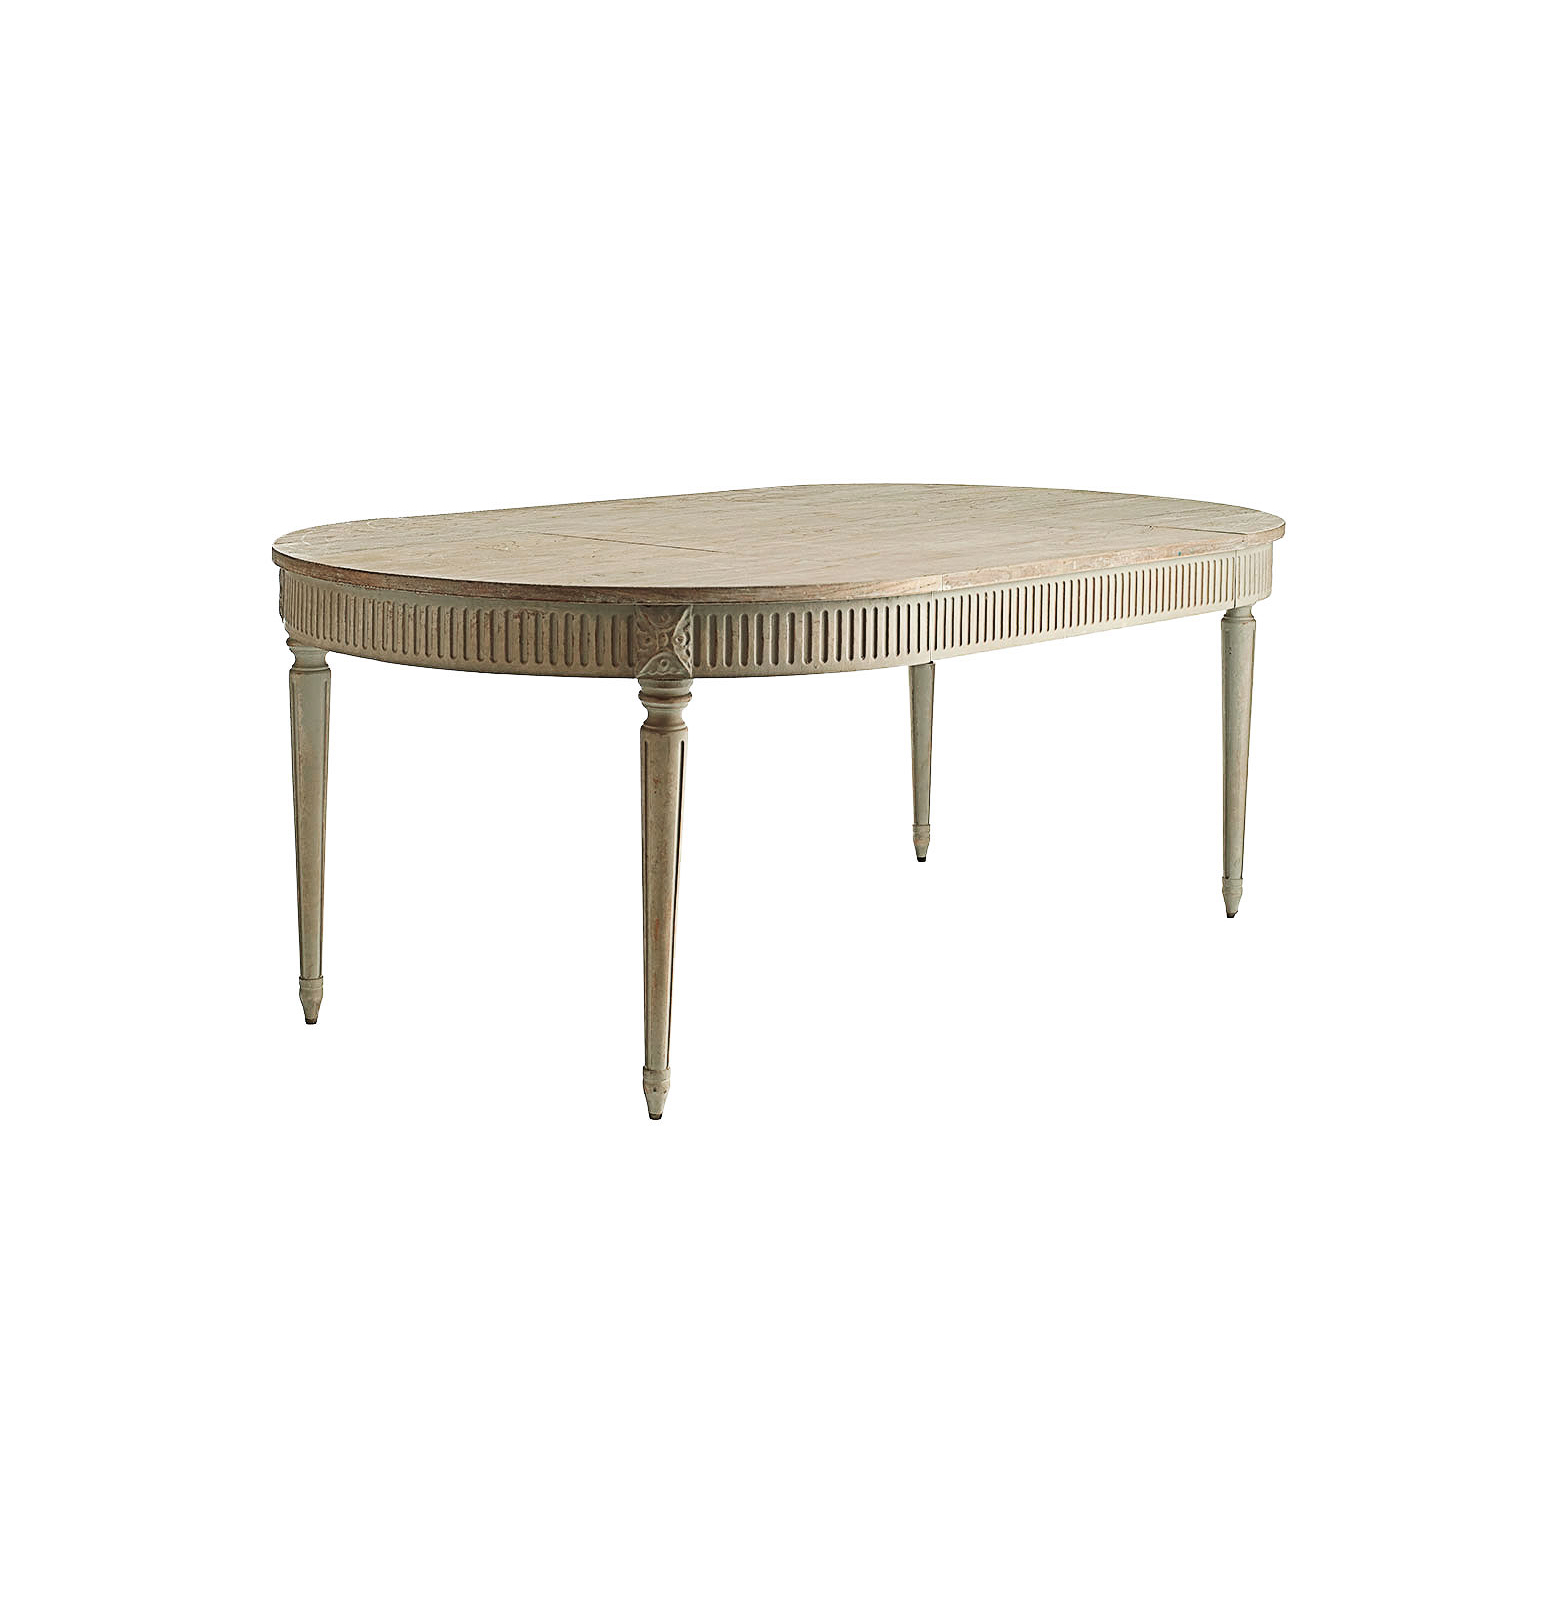 rounded dining room table